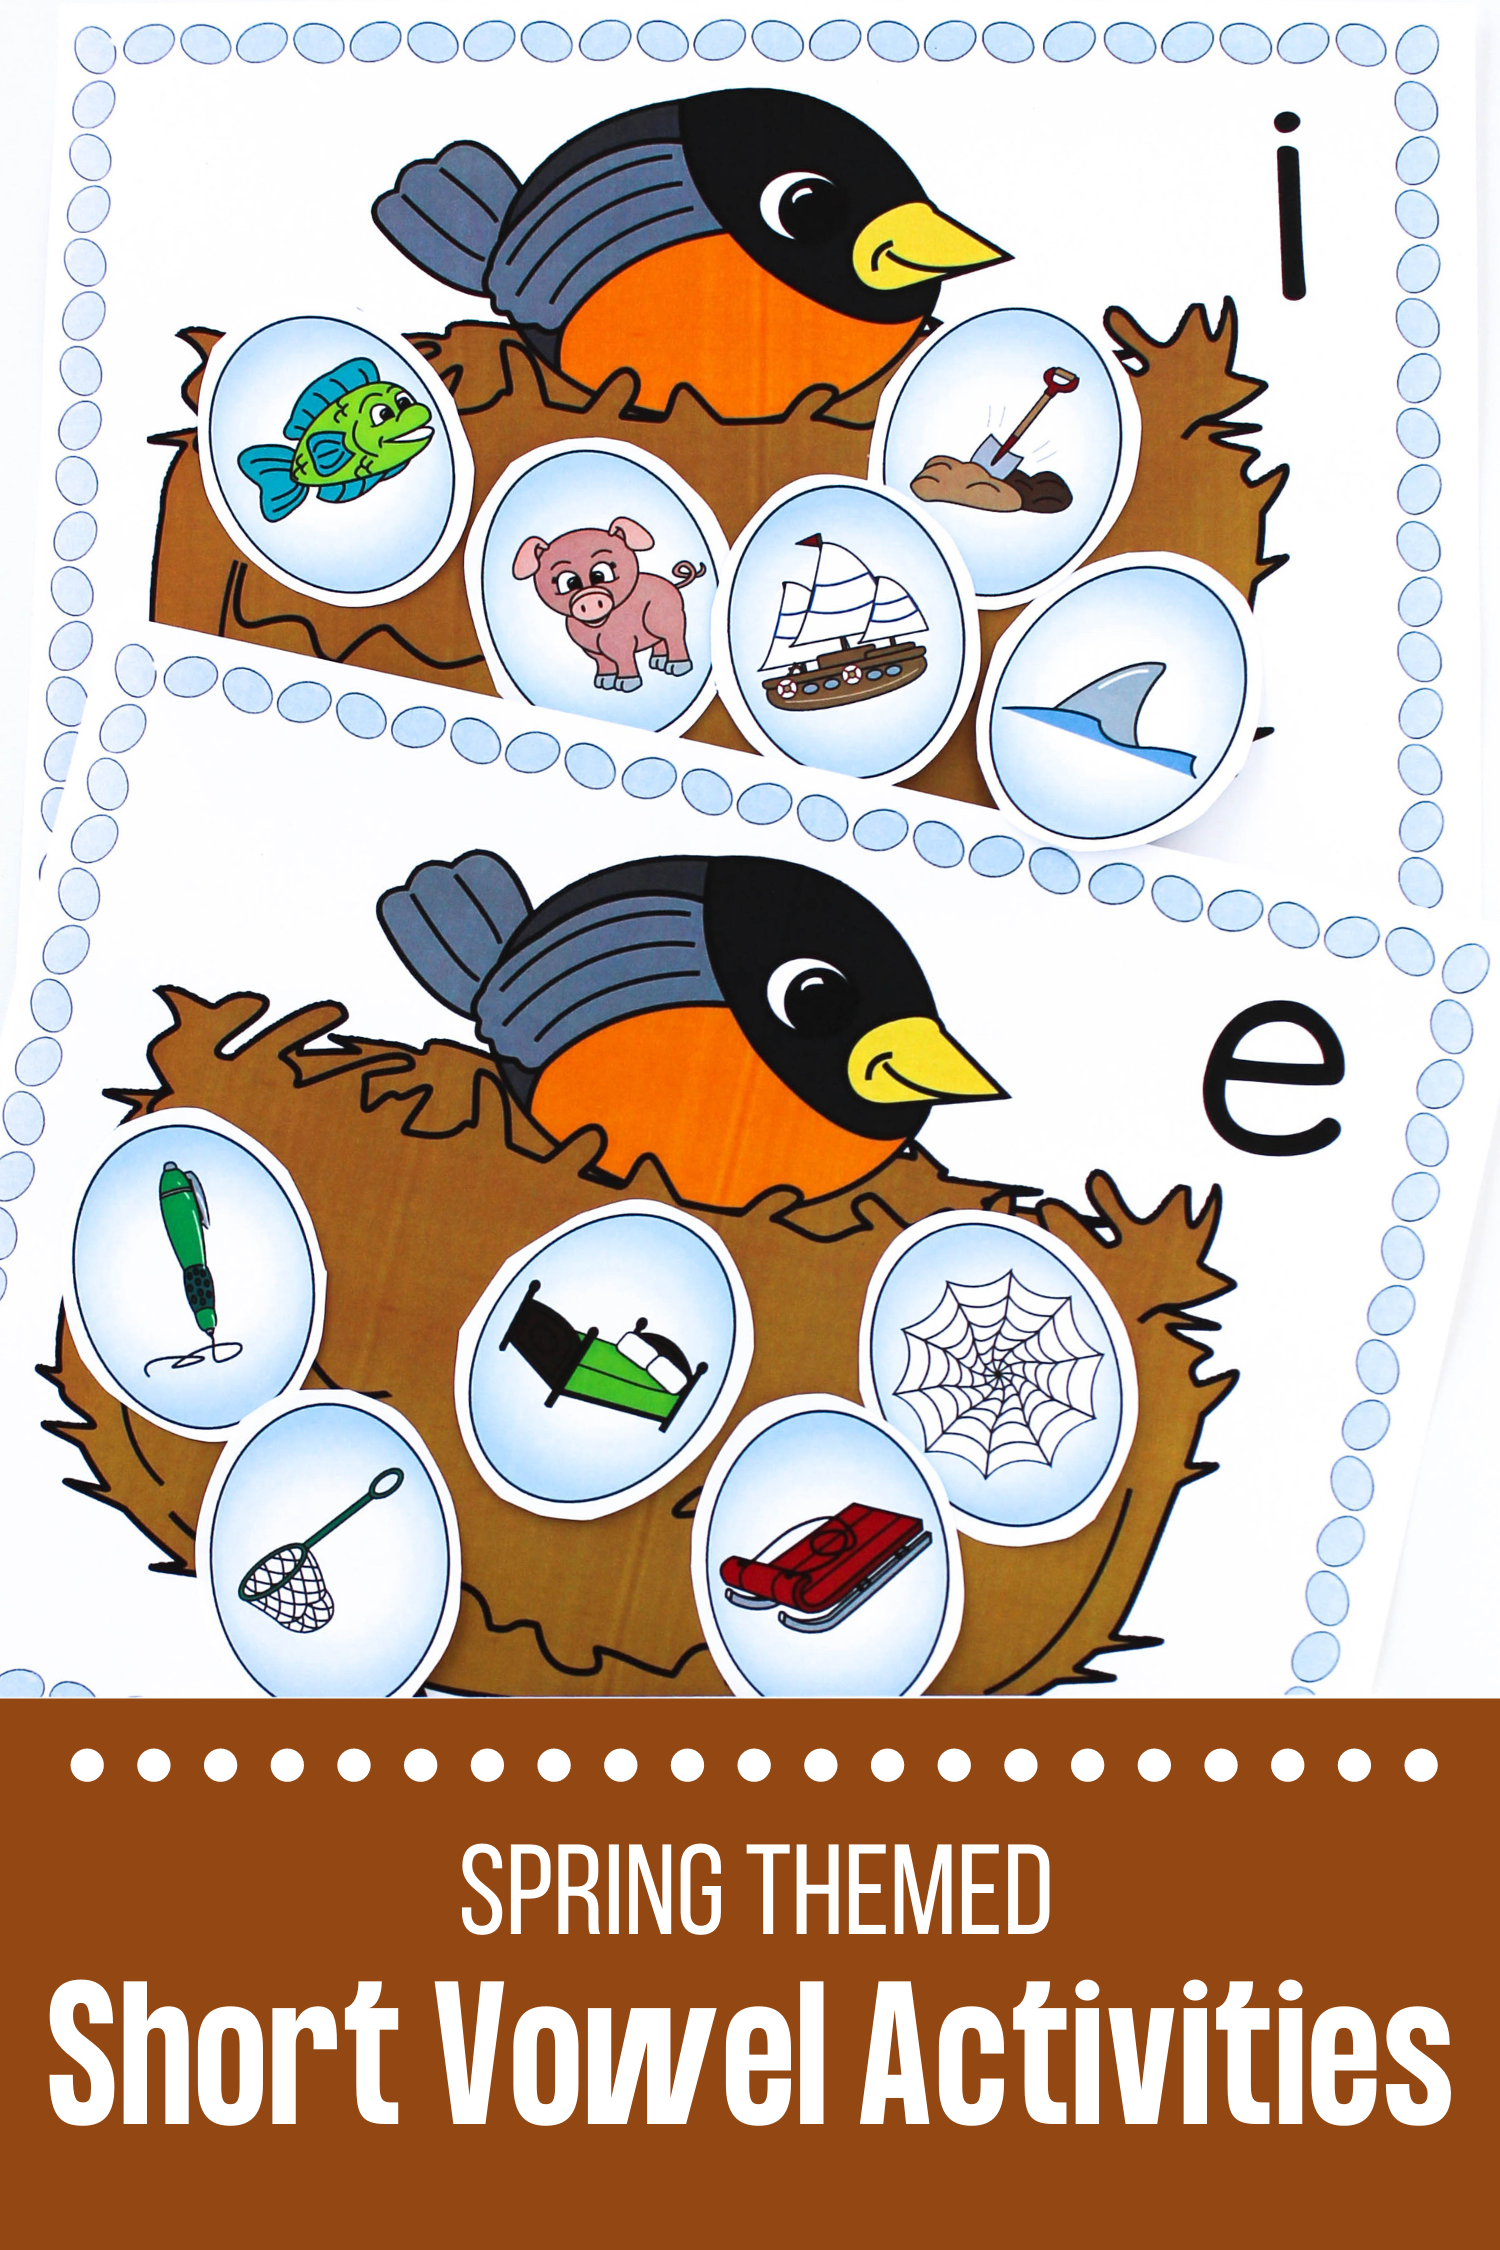 Robin S Nest Activities For Early Phonics Skills In 2020 Vowel Activities Short Vowel Activities Short Vowels